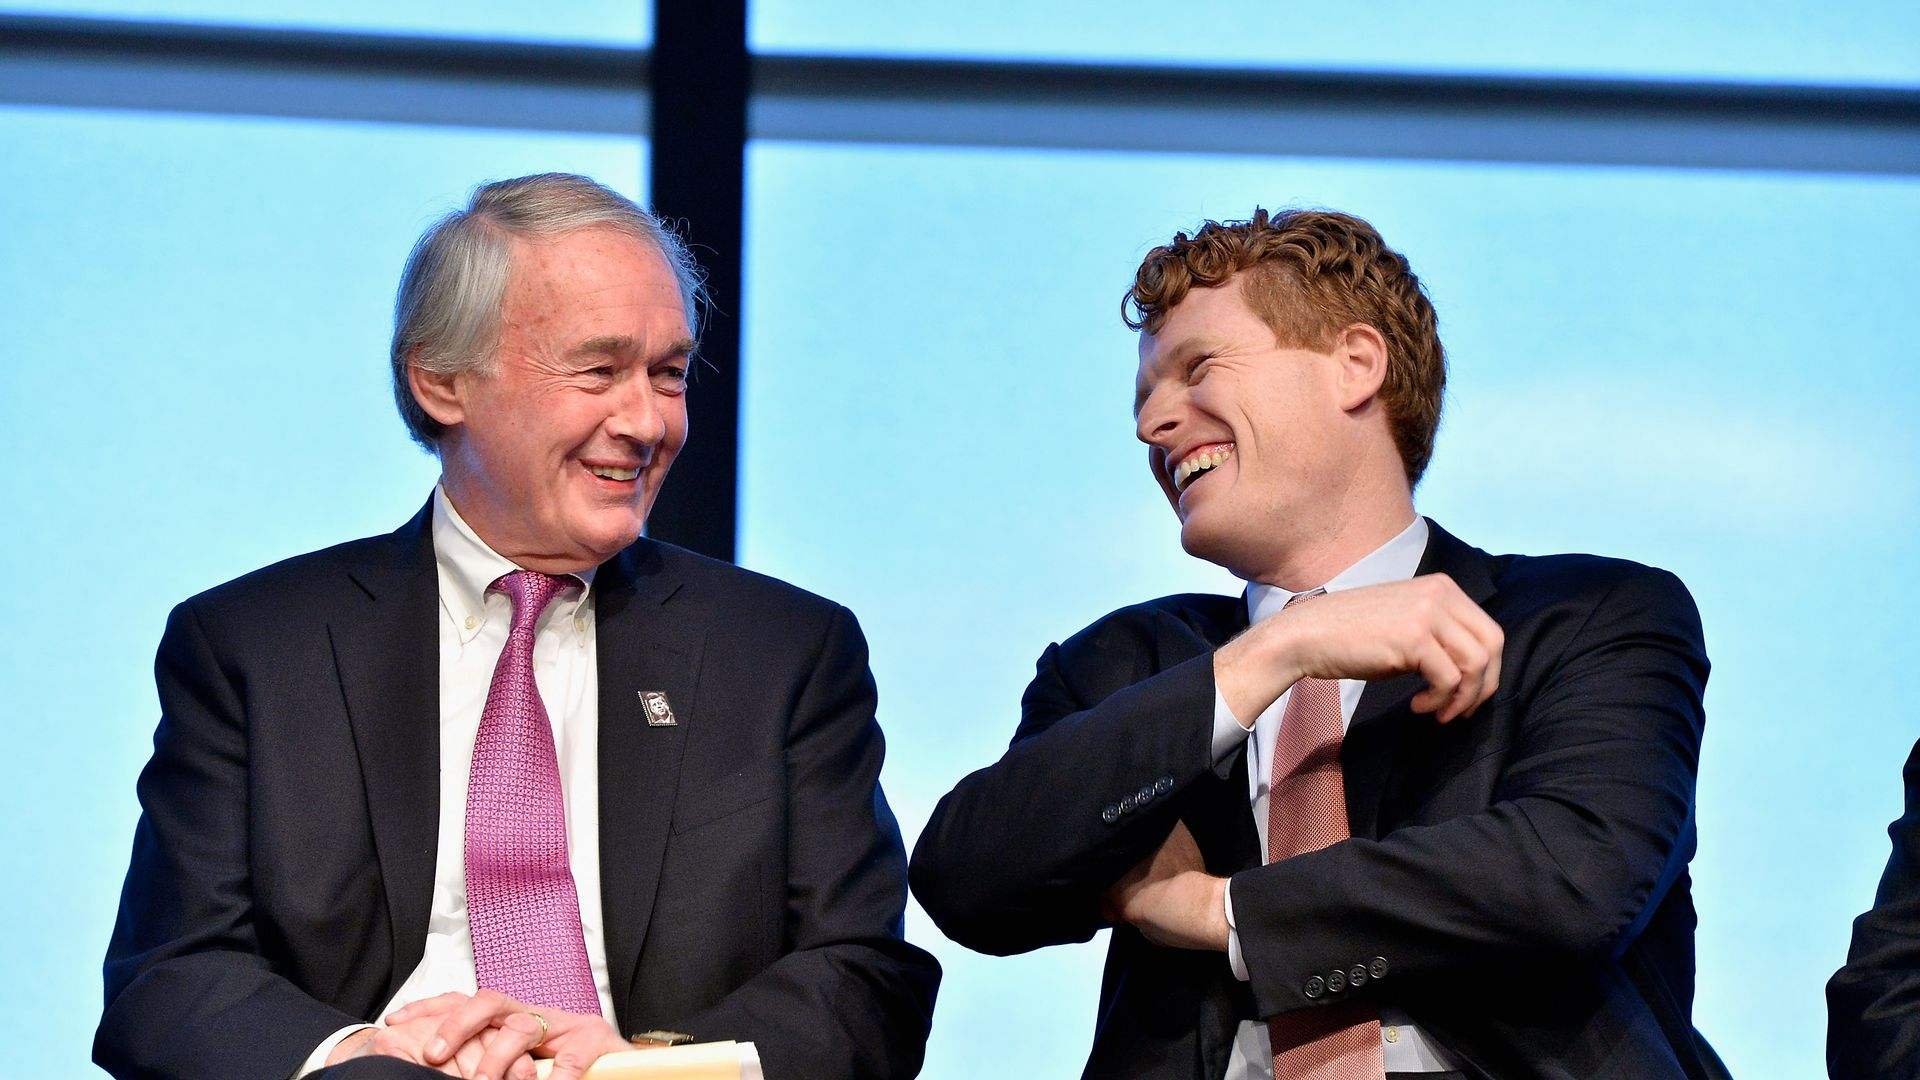 Ed Markey and Joe Kennedy